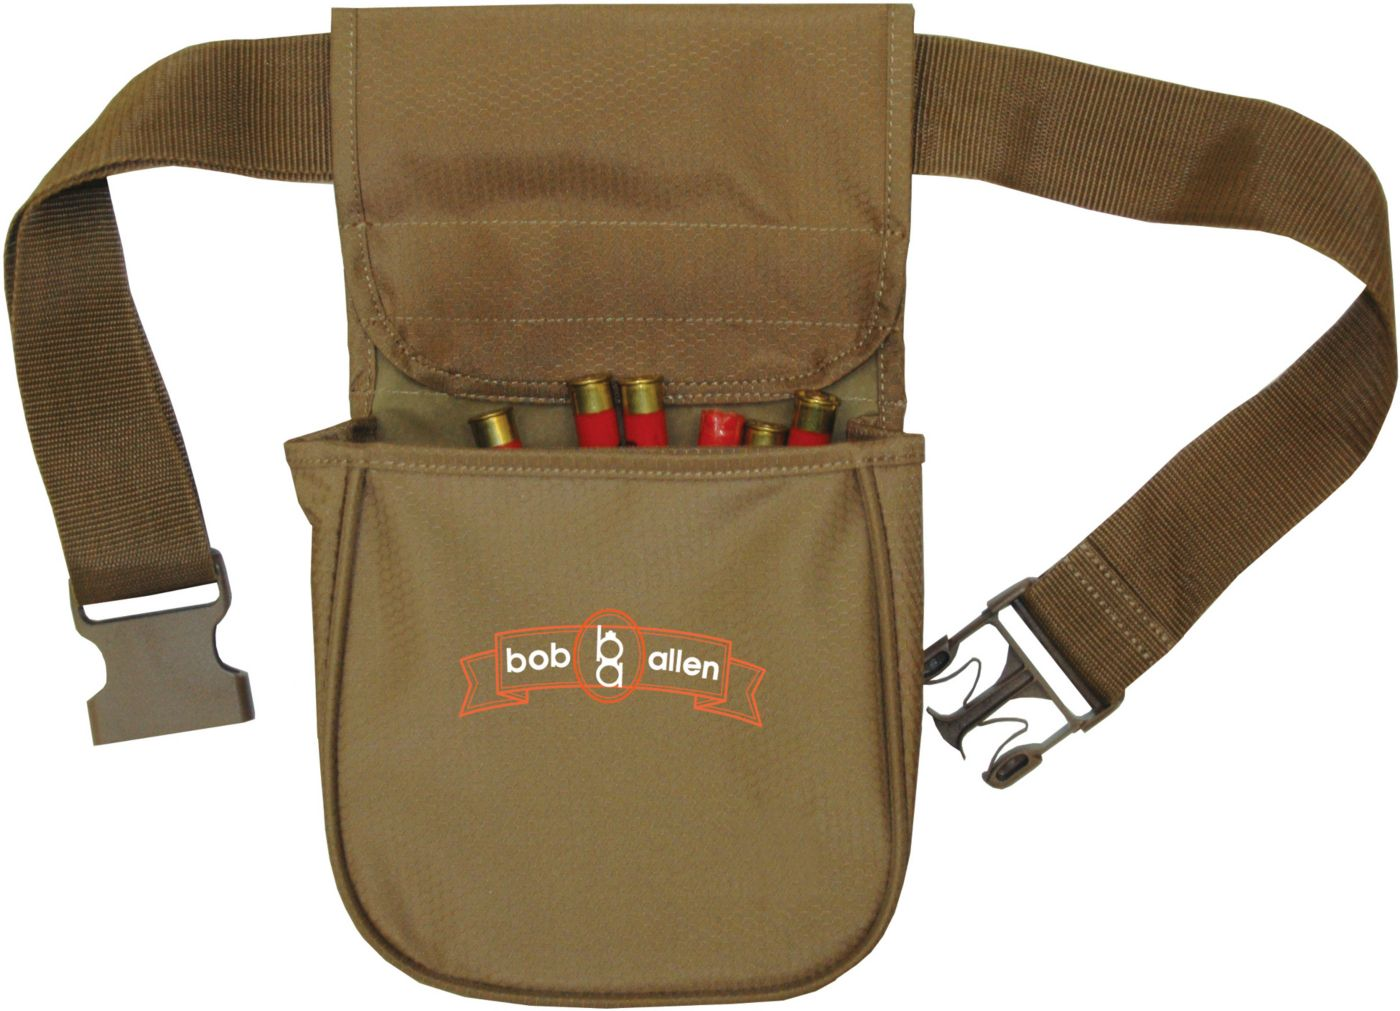 Bob Allen Divided Pouch with Belt